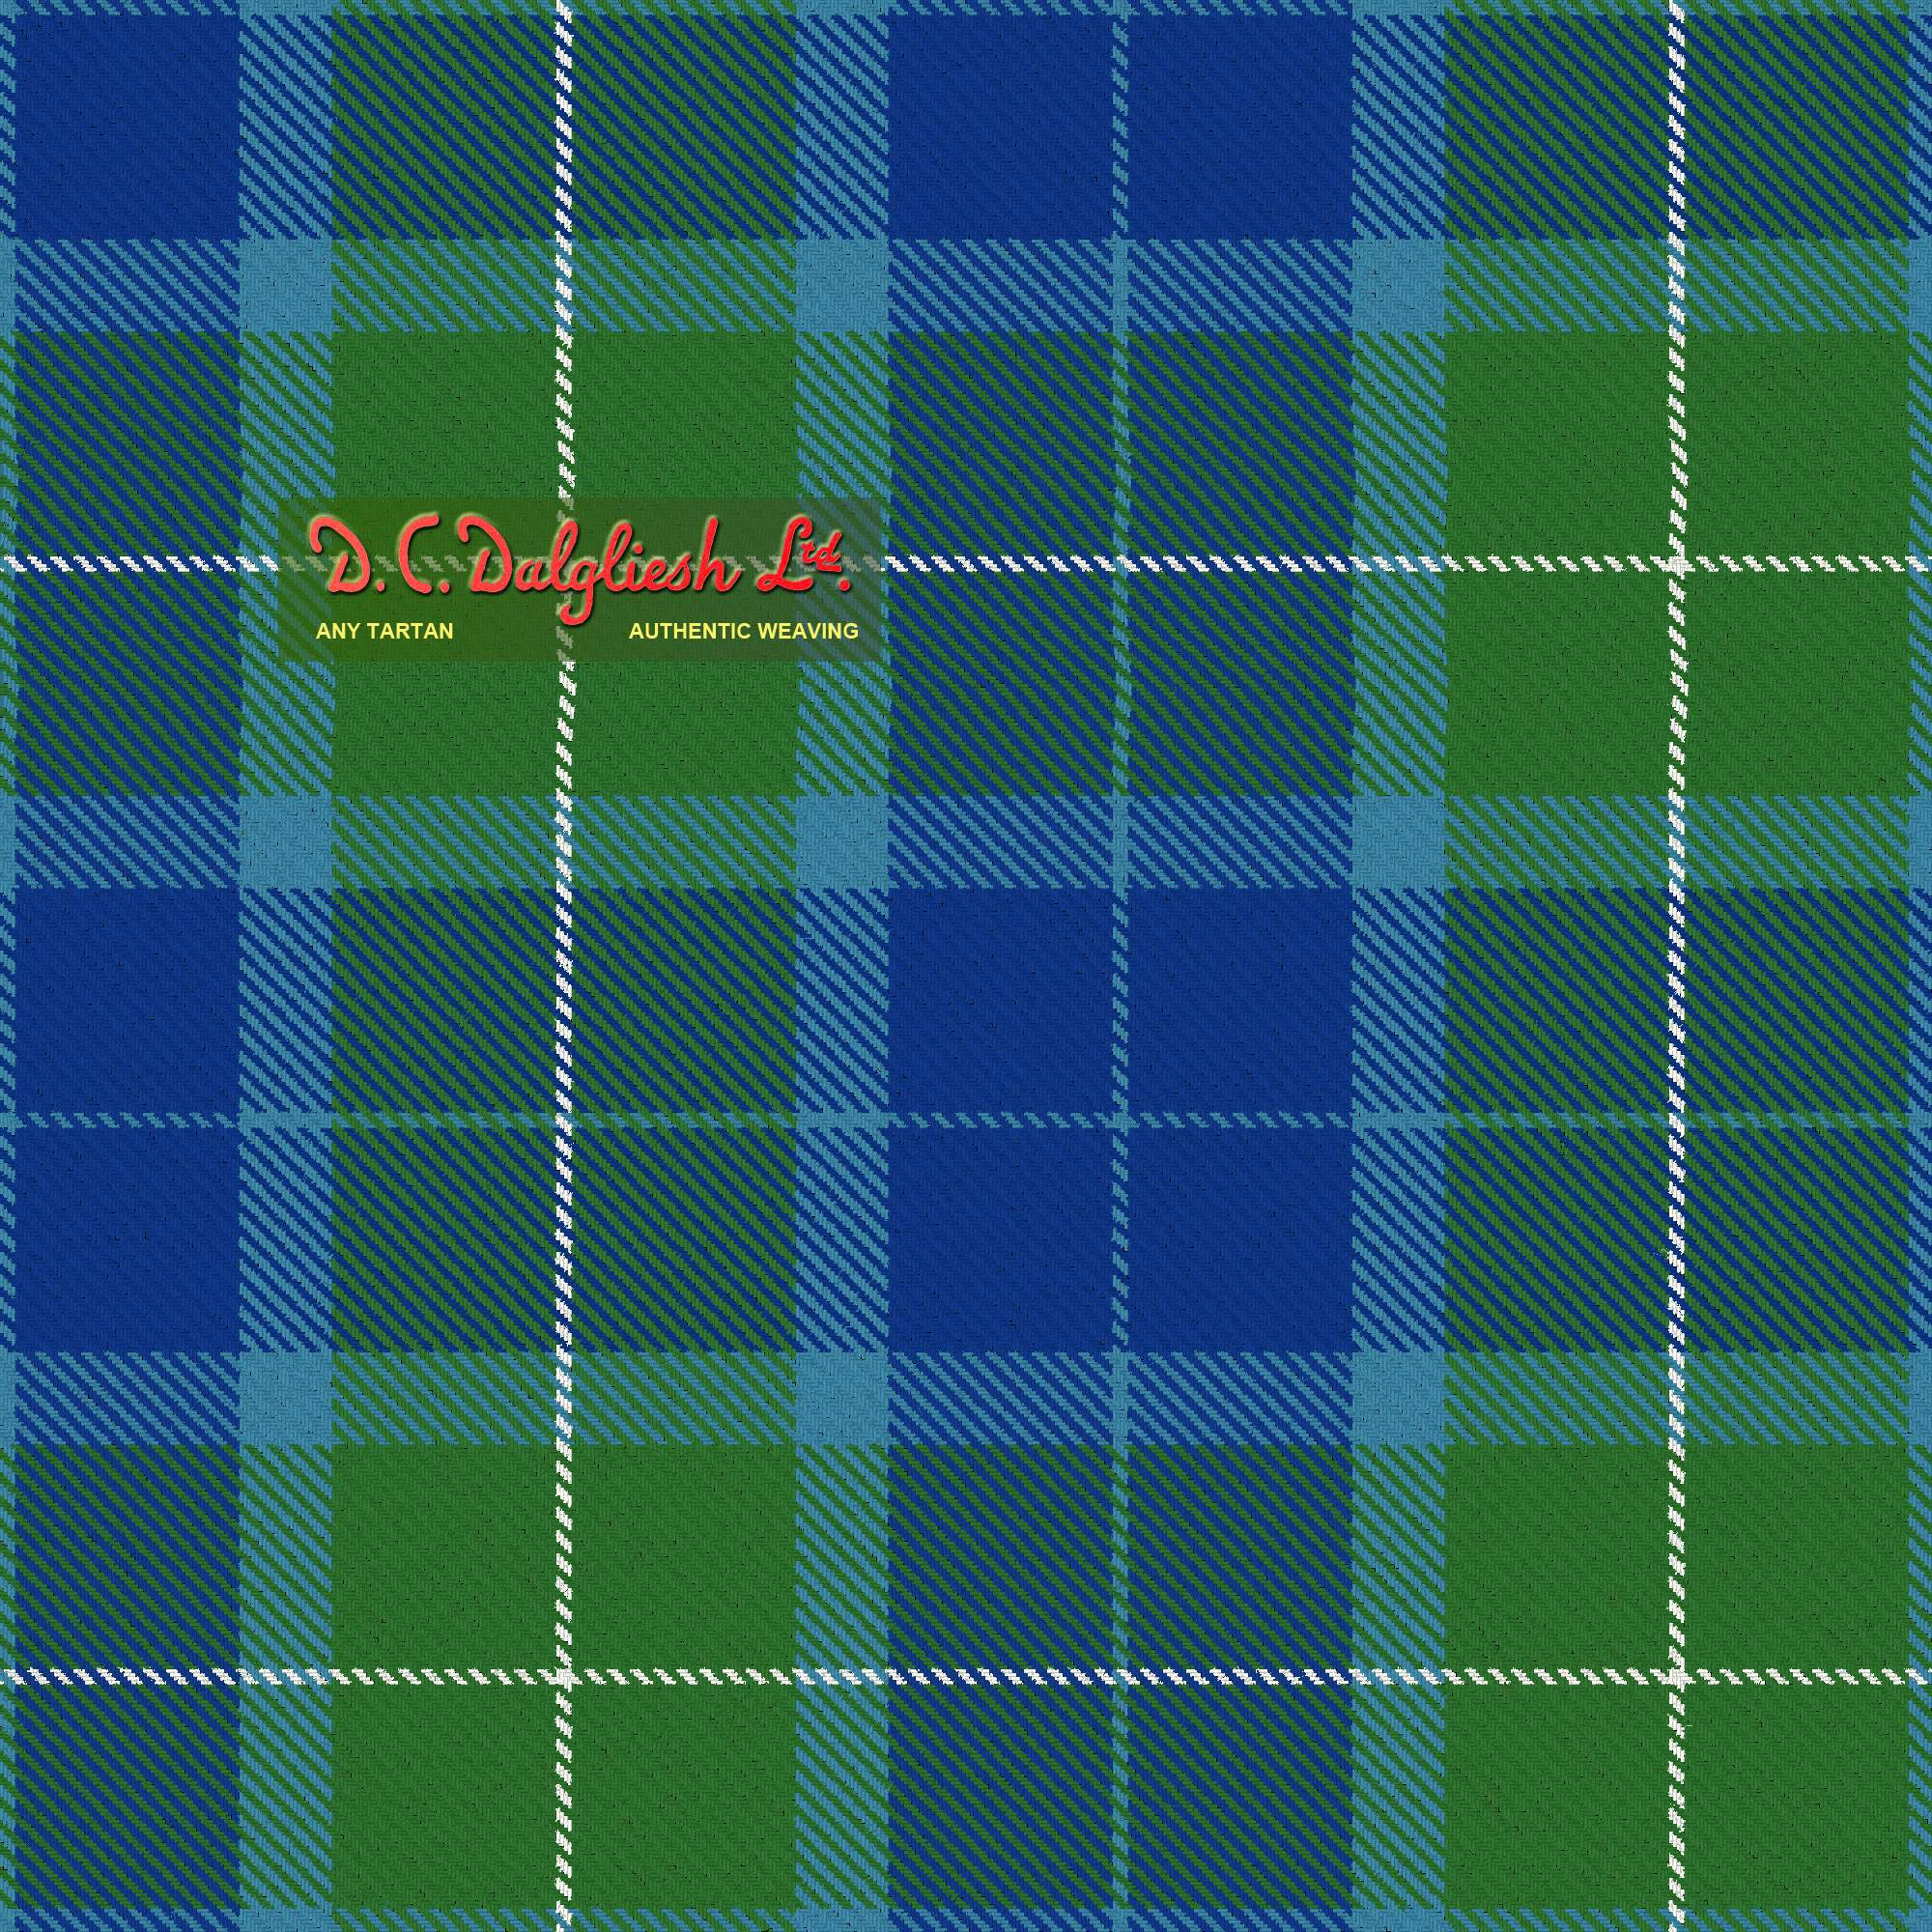 Wallace Blue Fabric By Dc Dalgliesh Hand Crafted Tartans